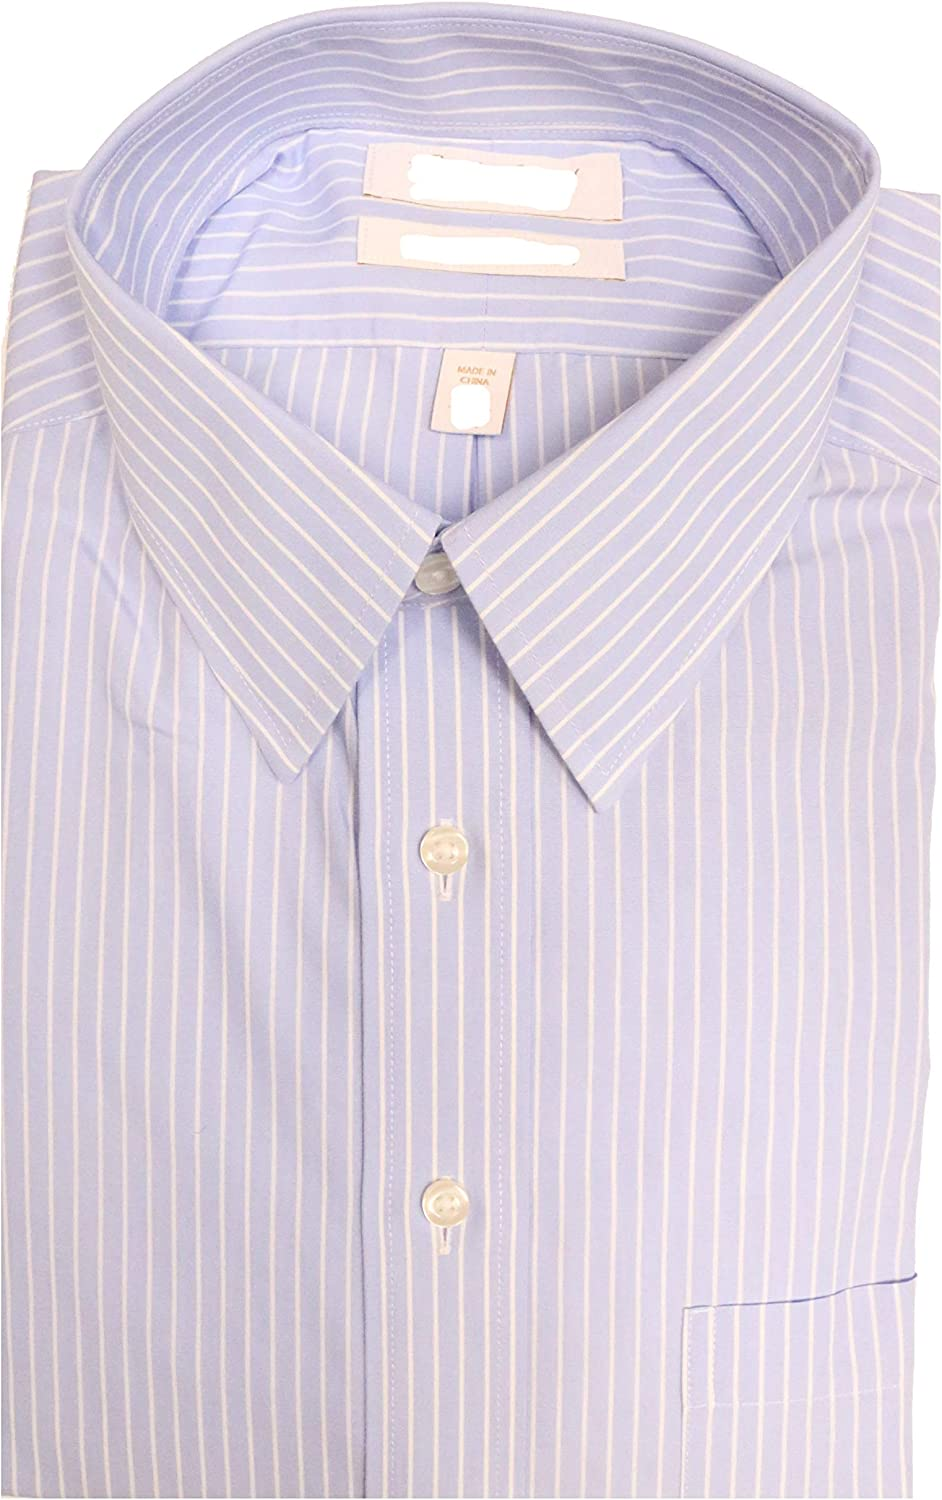 Gold Label Roundtree & Yorke Non-Iron Fitted Point Collar Stripe Dress Shirt S95DG115 Blue